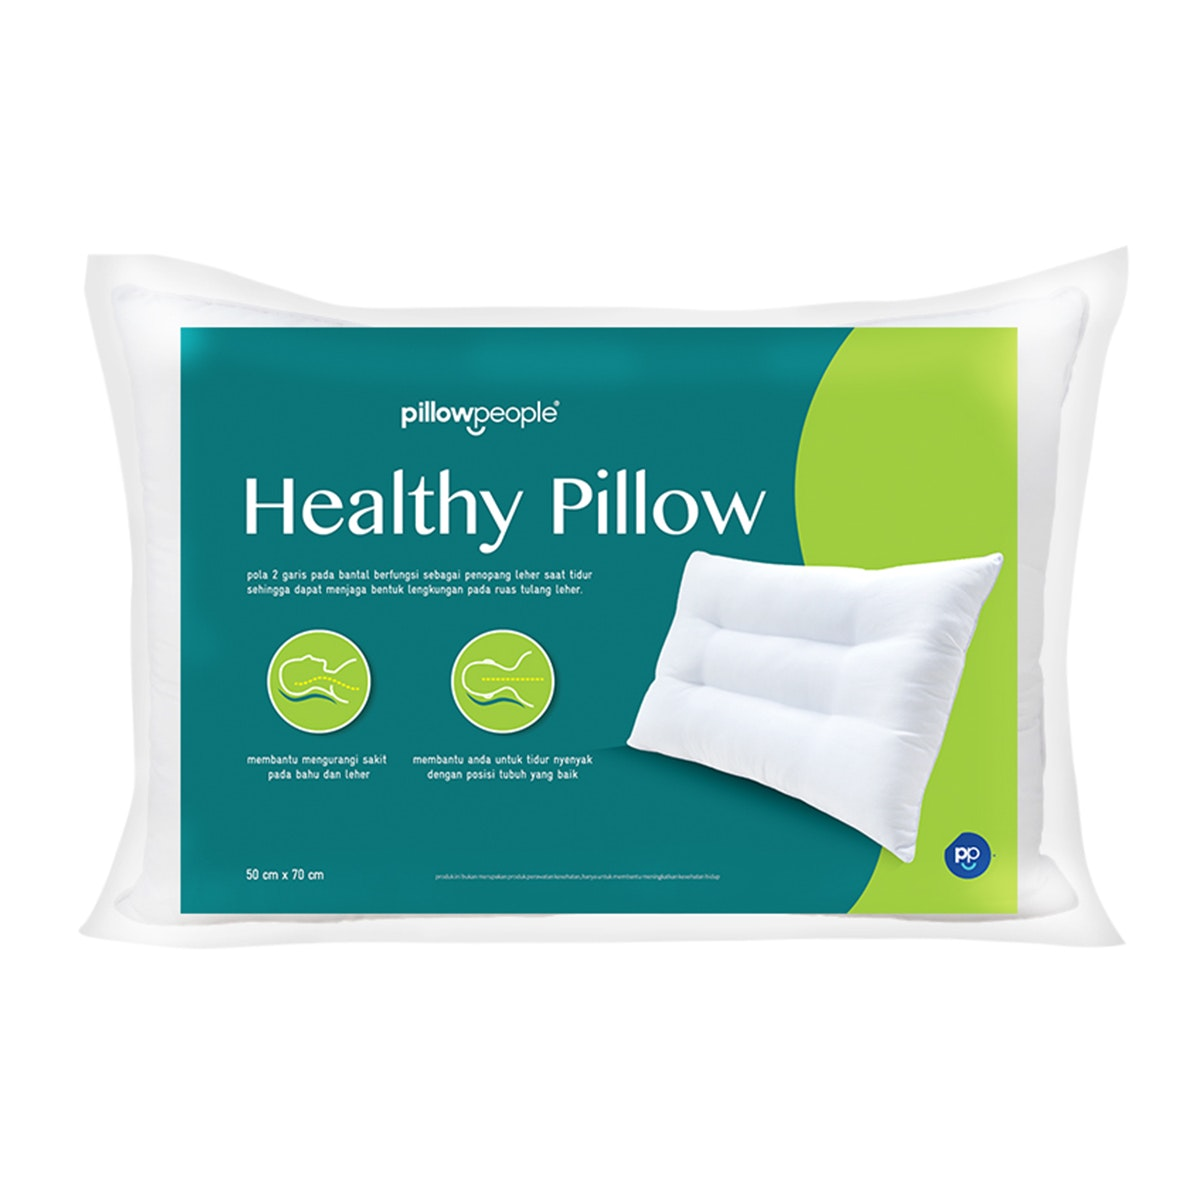 Pillow People Healthy Pillow Microfiber